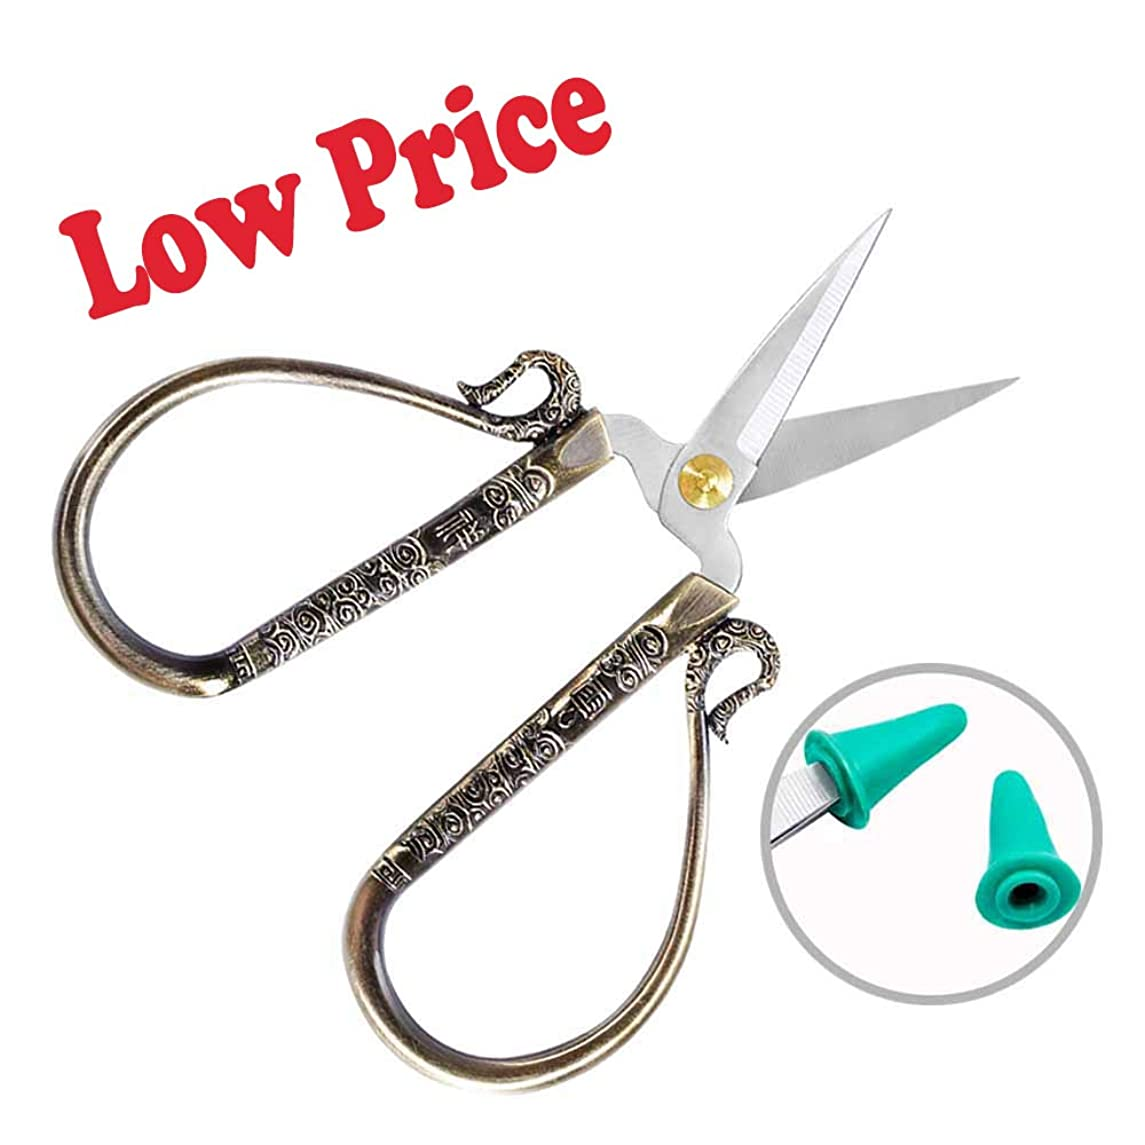 BUTUZE Embroidery Shears- Fashionable 4.72Inch Small Sharp Metal Scissors with Comfortable Grip-Practical Work Supplies for Needlework/Sewing/Art Work/Embroidery/Cutting